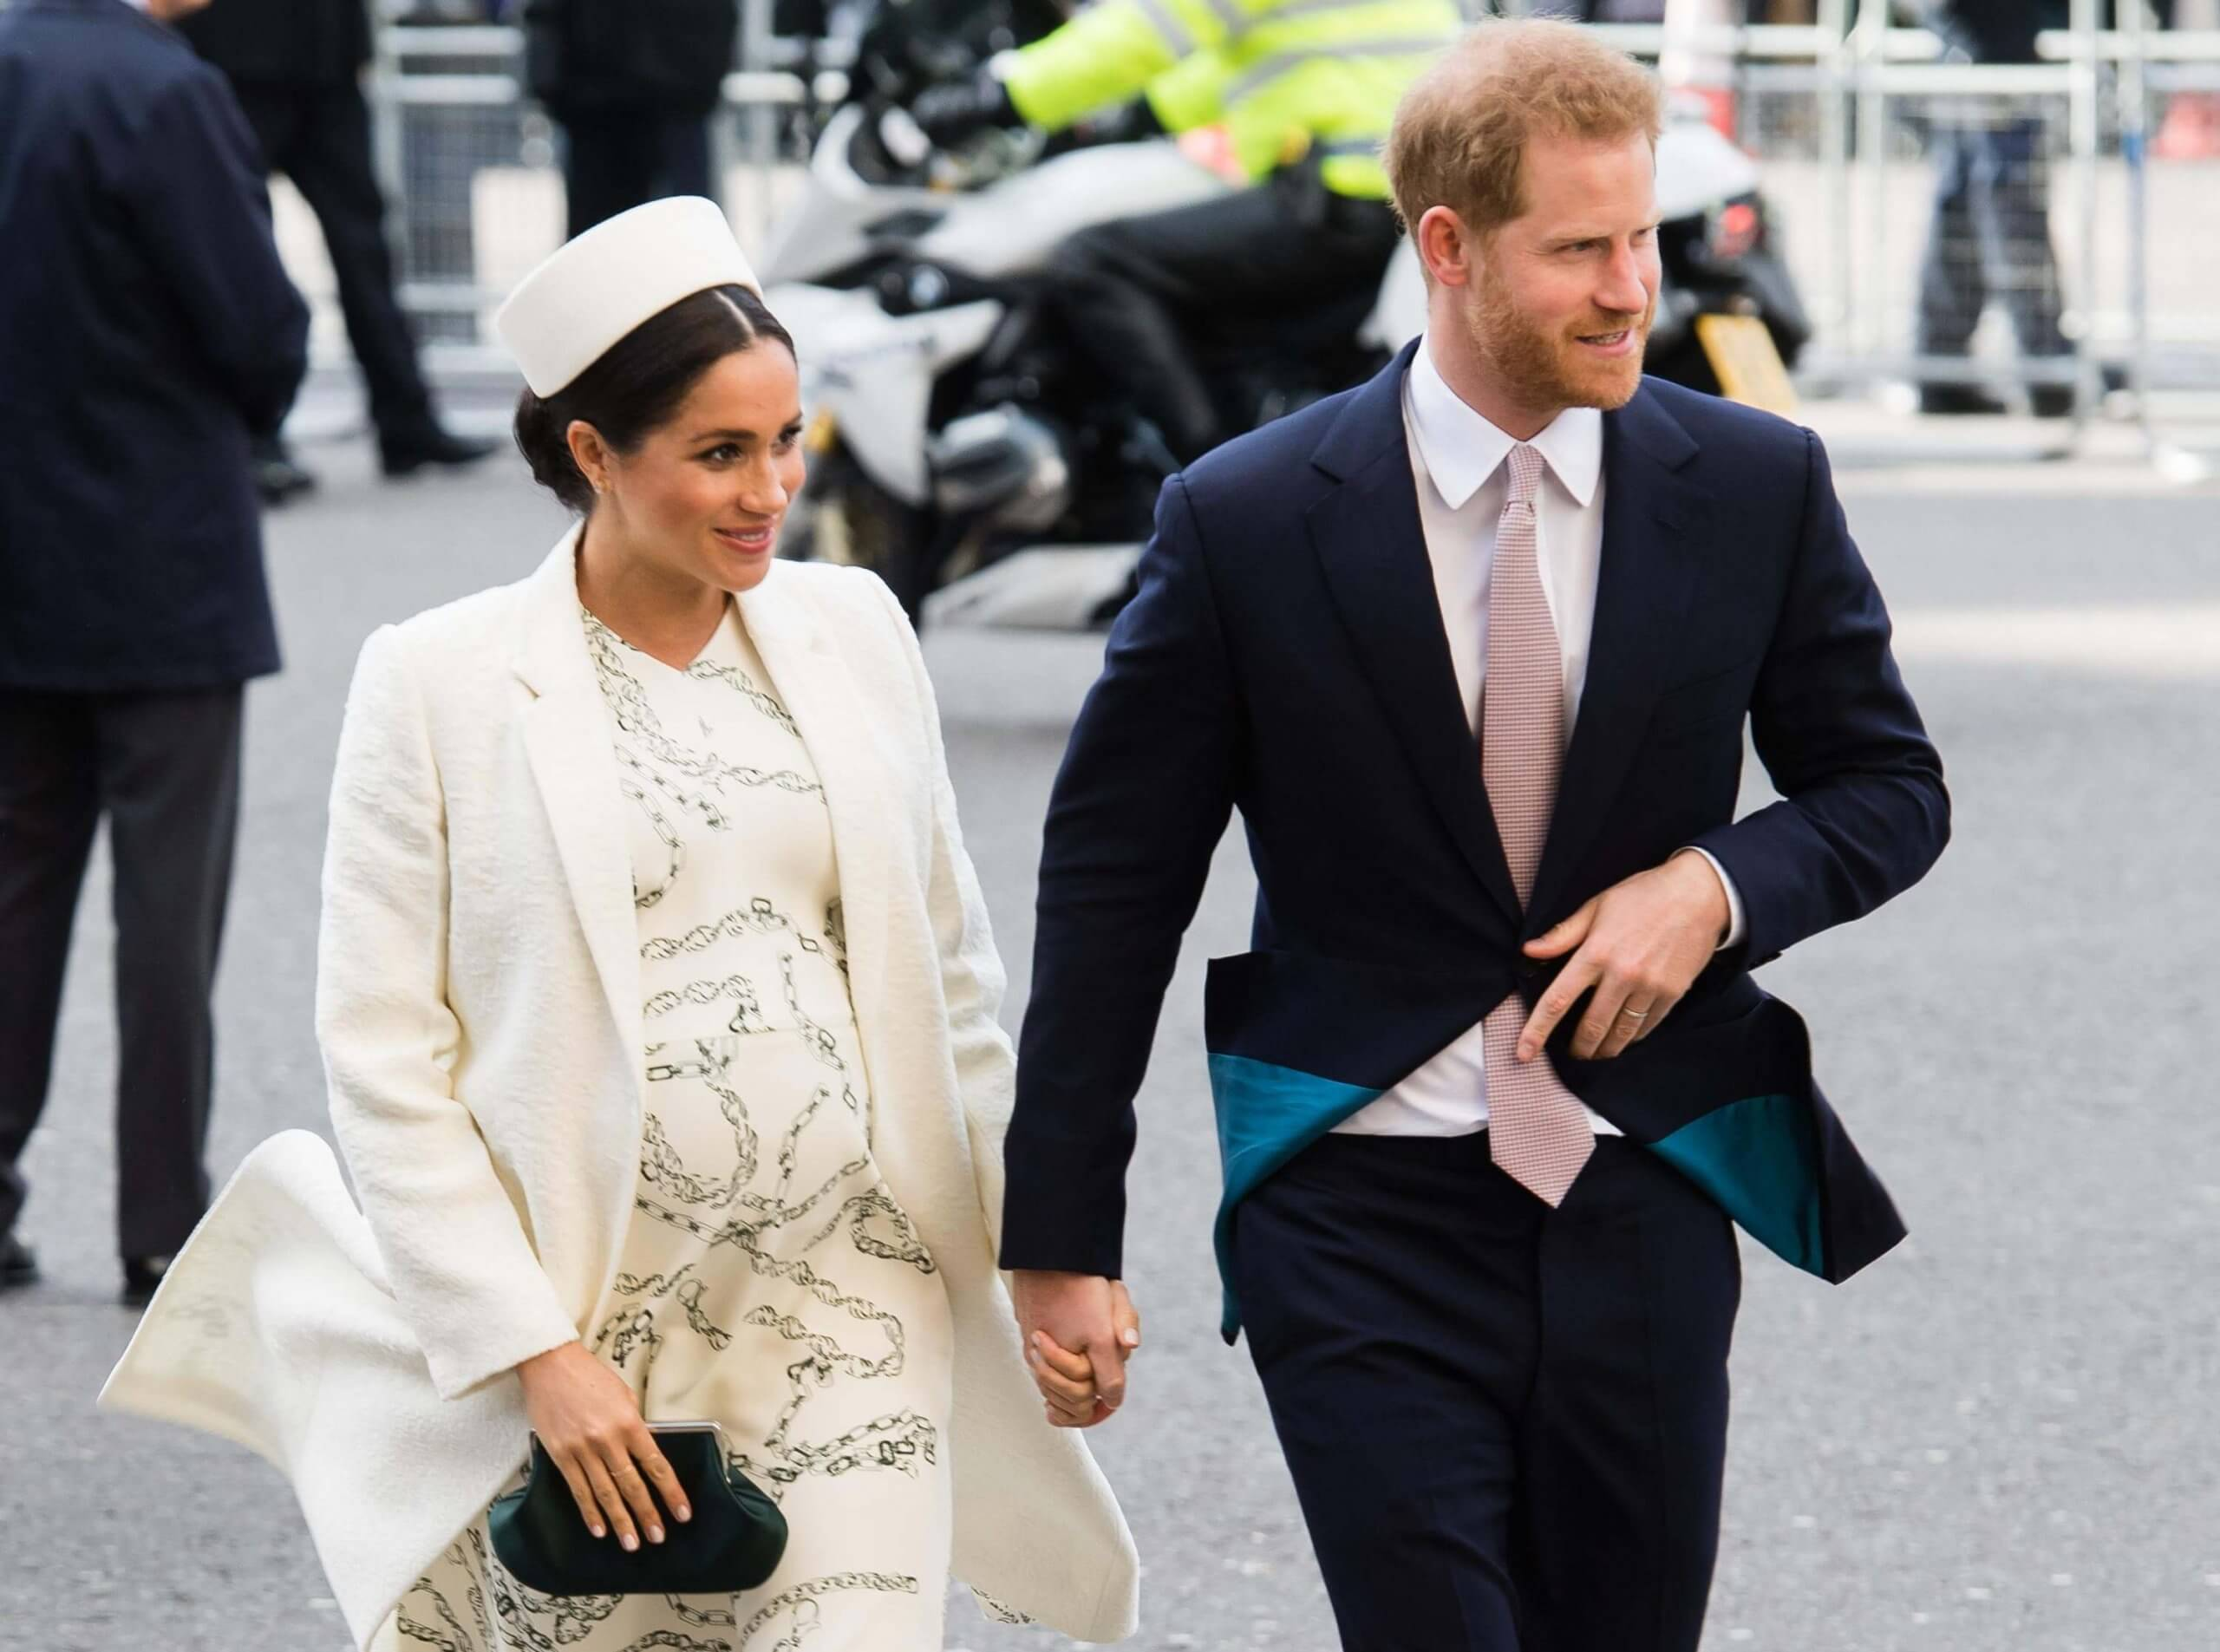 Surprise!? Duke And Duchess Of Sussex, Harry And Meghan, Welcome Baby Boy